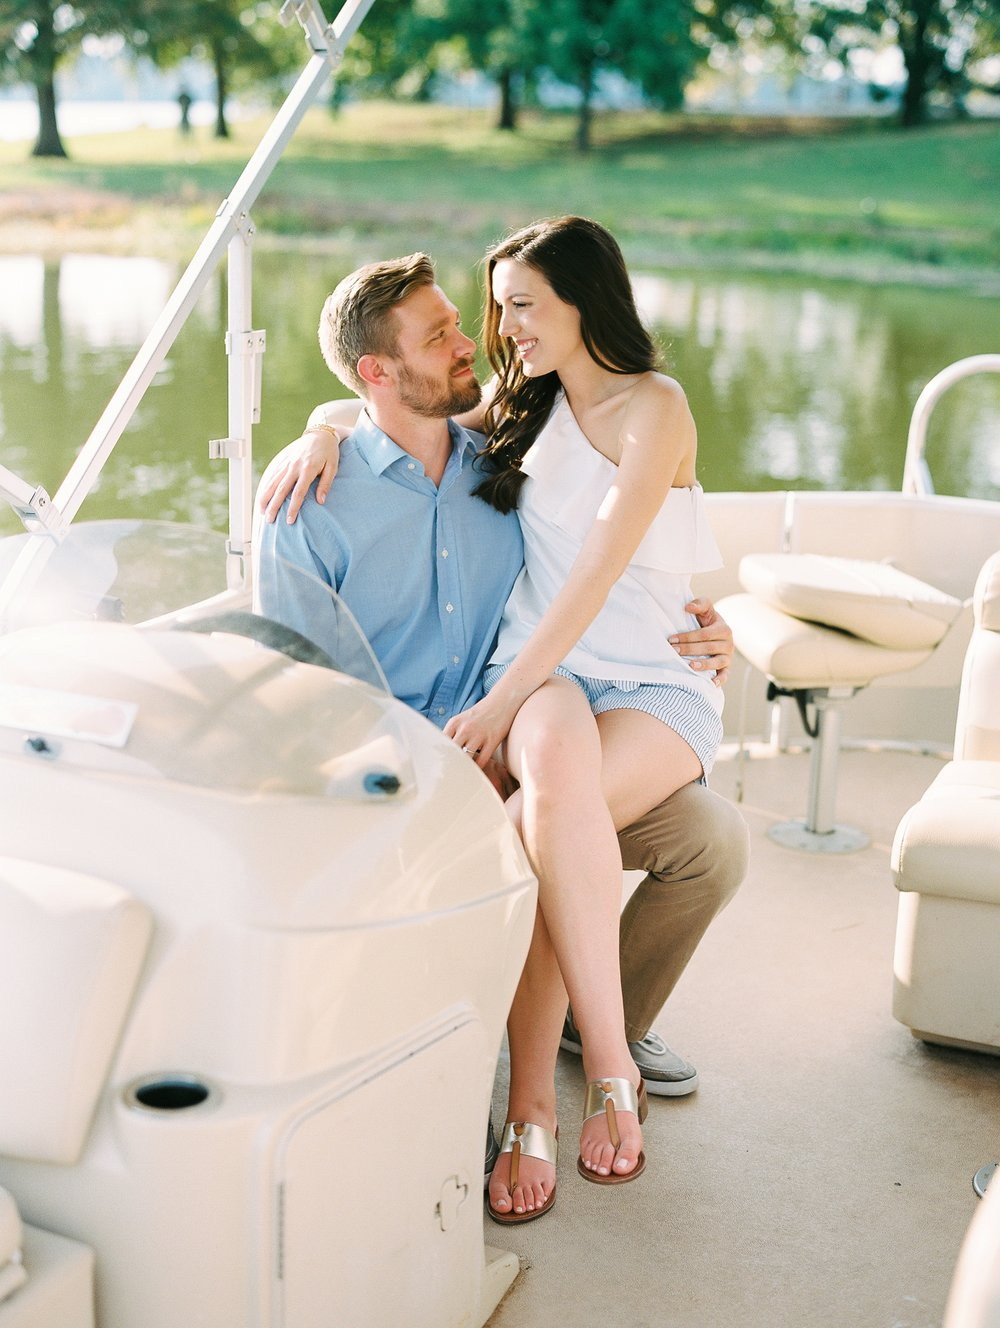 Nautical Boat Engagement Session Film Photographer_0552.jpg